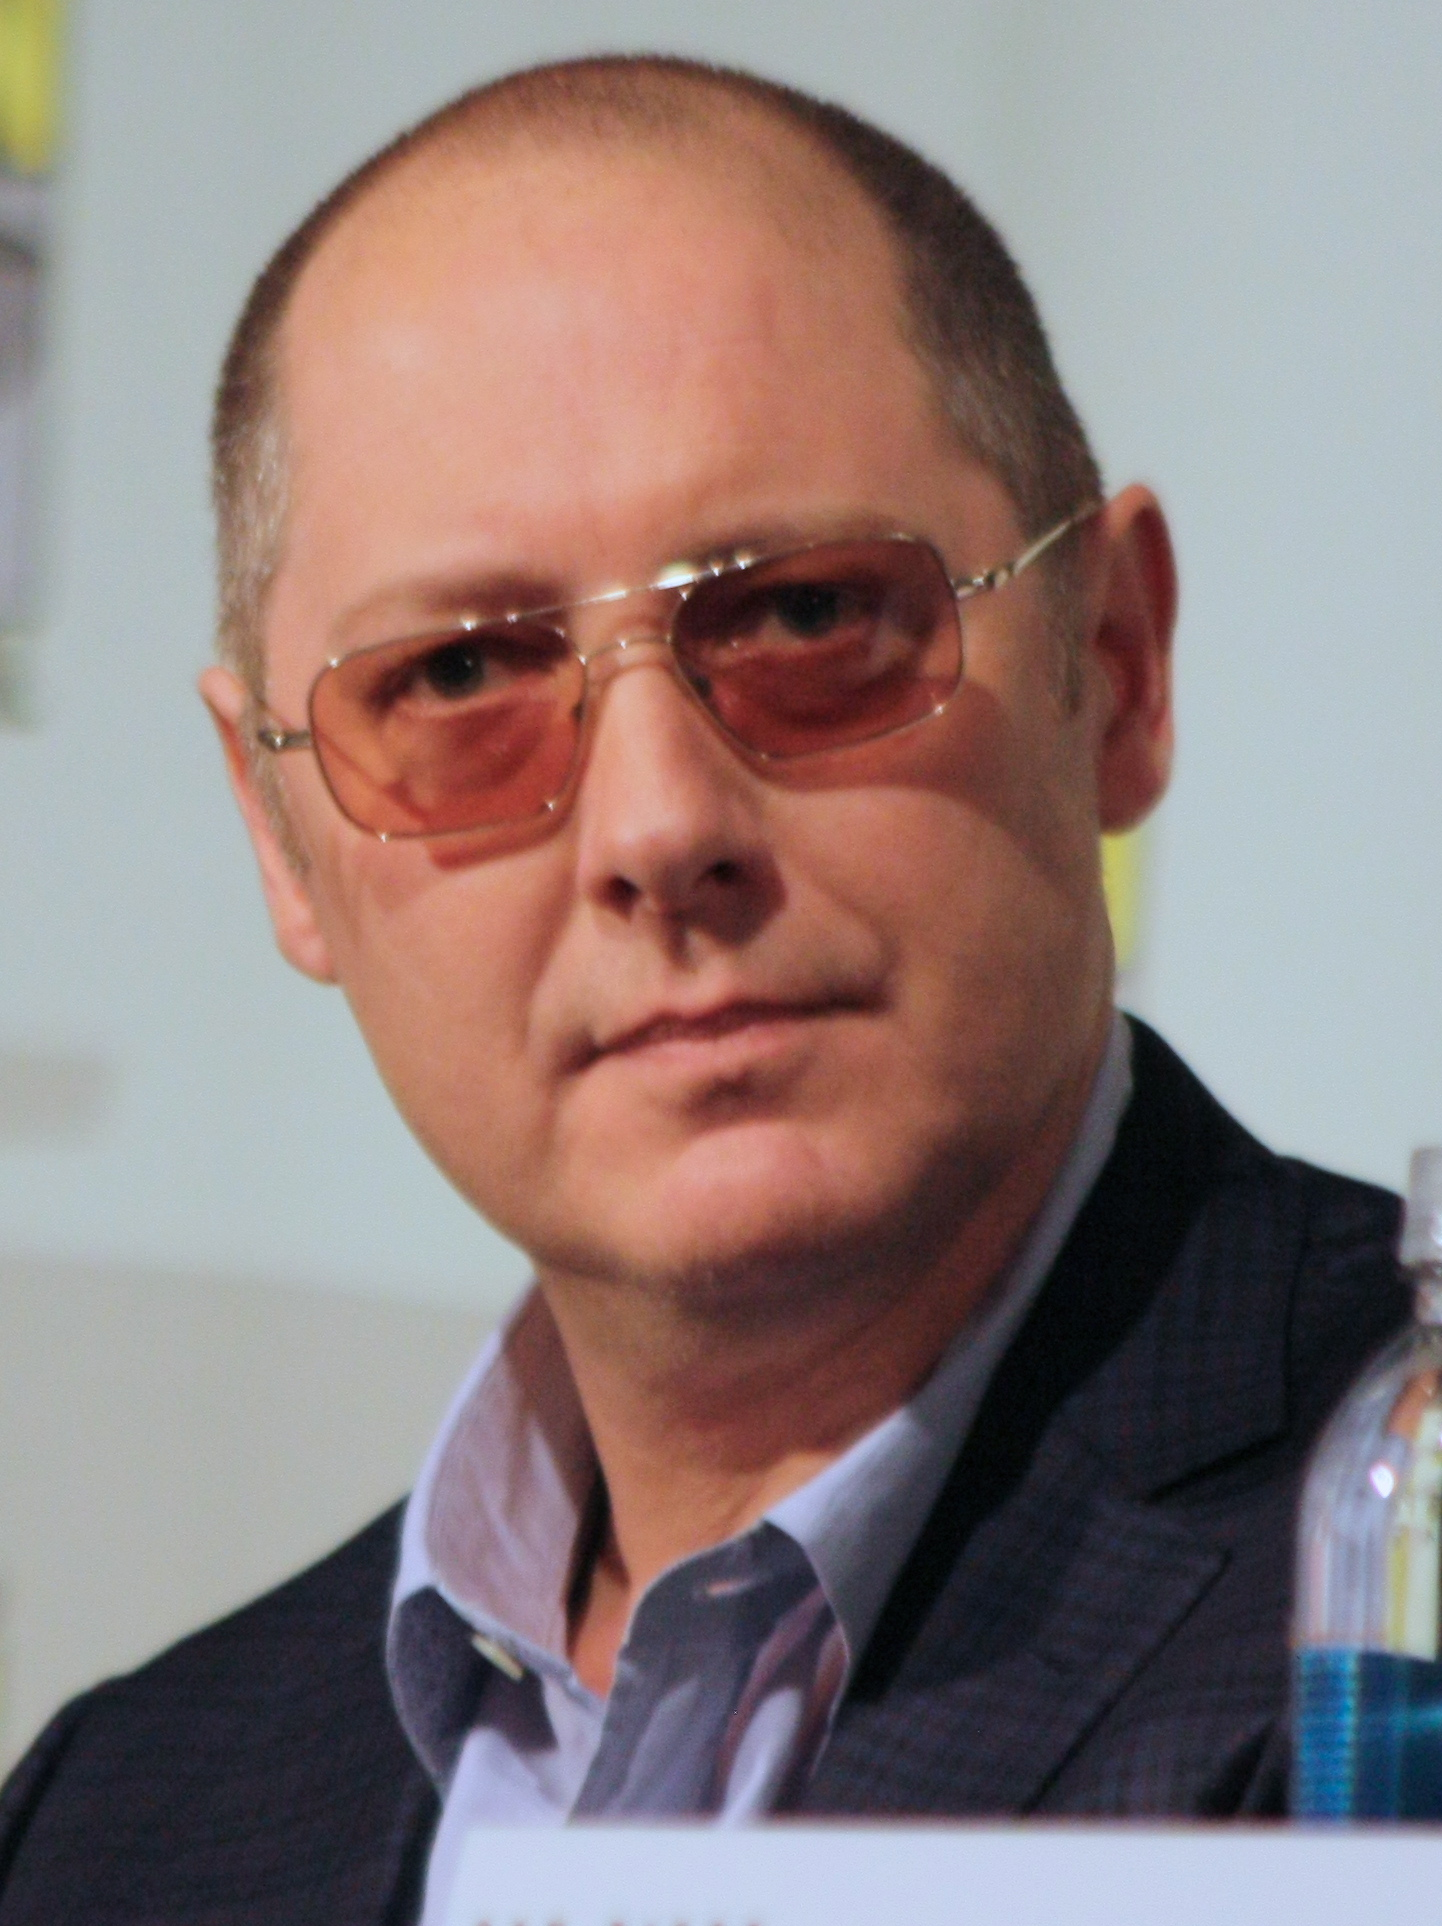 The 58-year old son of father Stoddard Greenwood Spader and mother Jean Fraser Spader James Spader in 2018 photo. James Spader earned a  million dollar salary - leaving the net worth at 10 million in 2018